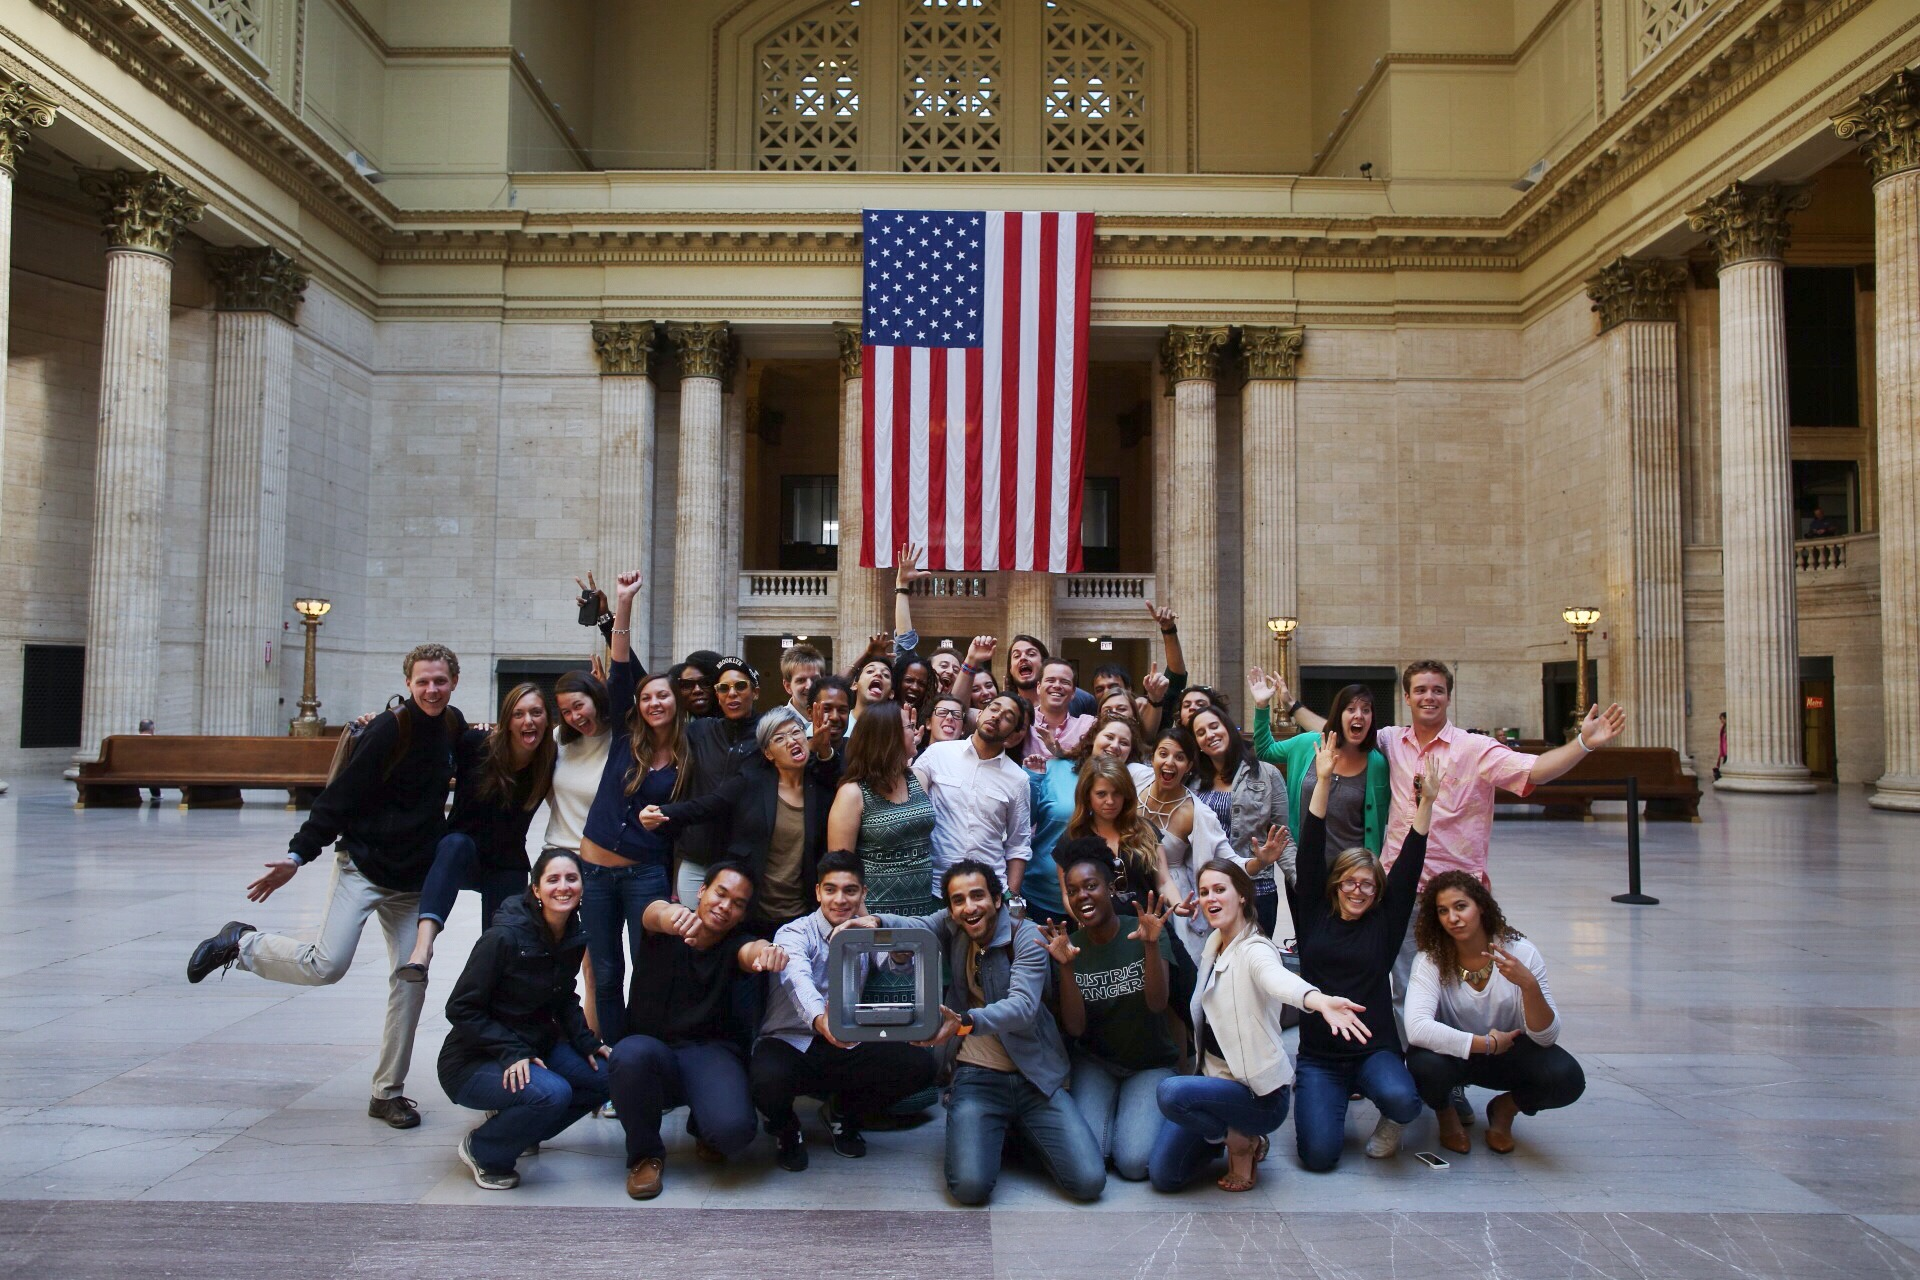 8/14/14  | The whole crew at Union Station in Chicago. (Credit: Tyler Metcalfe, National Geographic Travel)